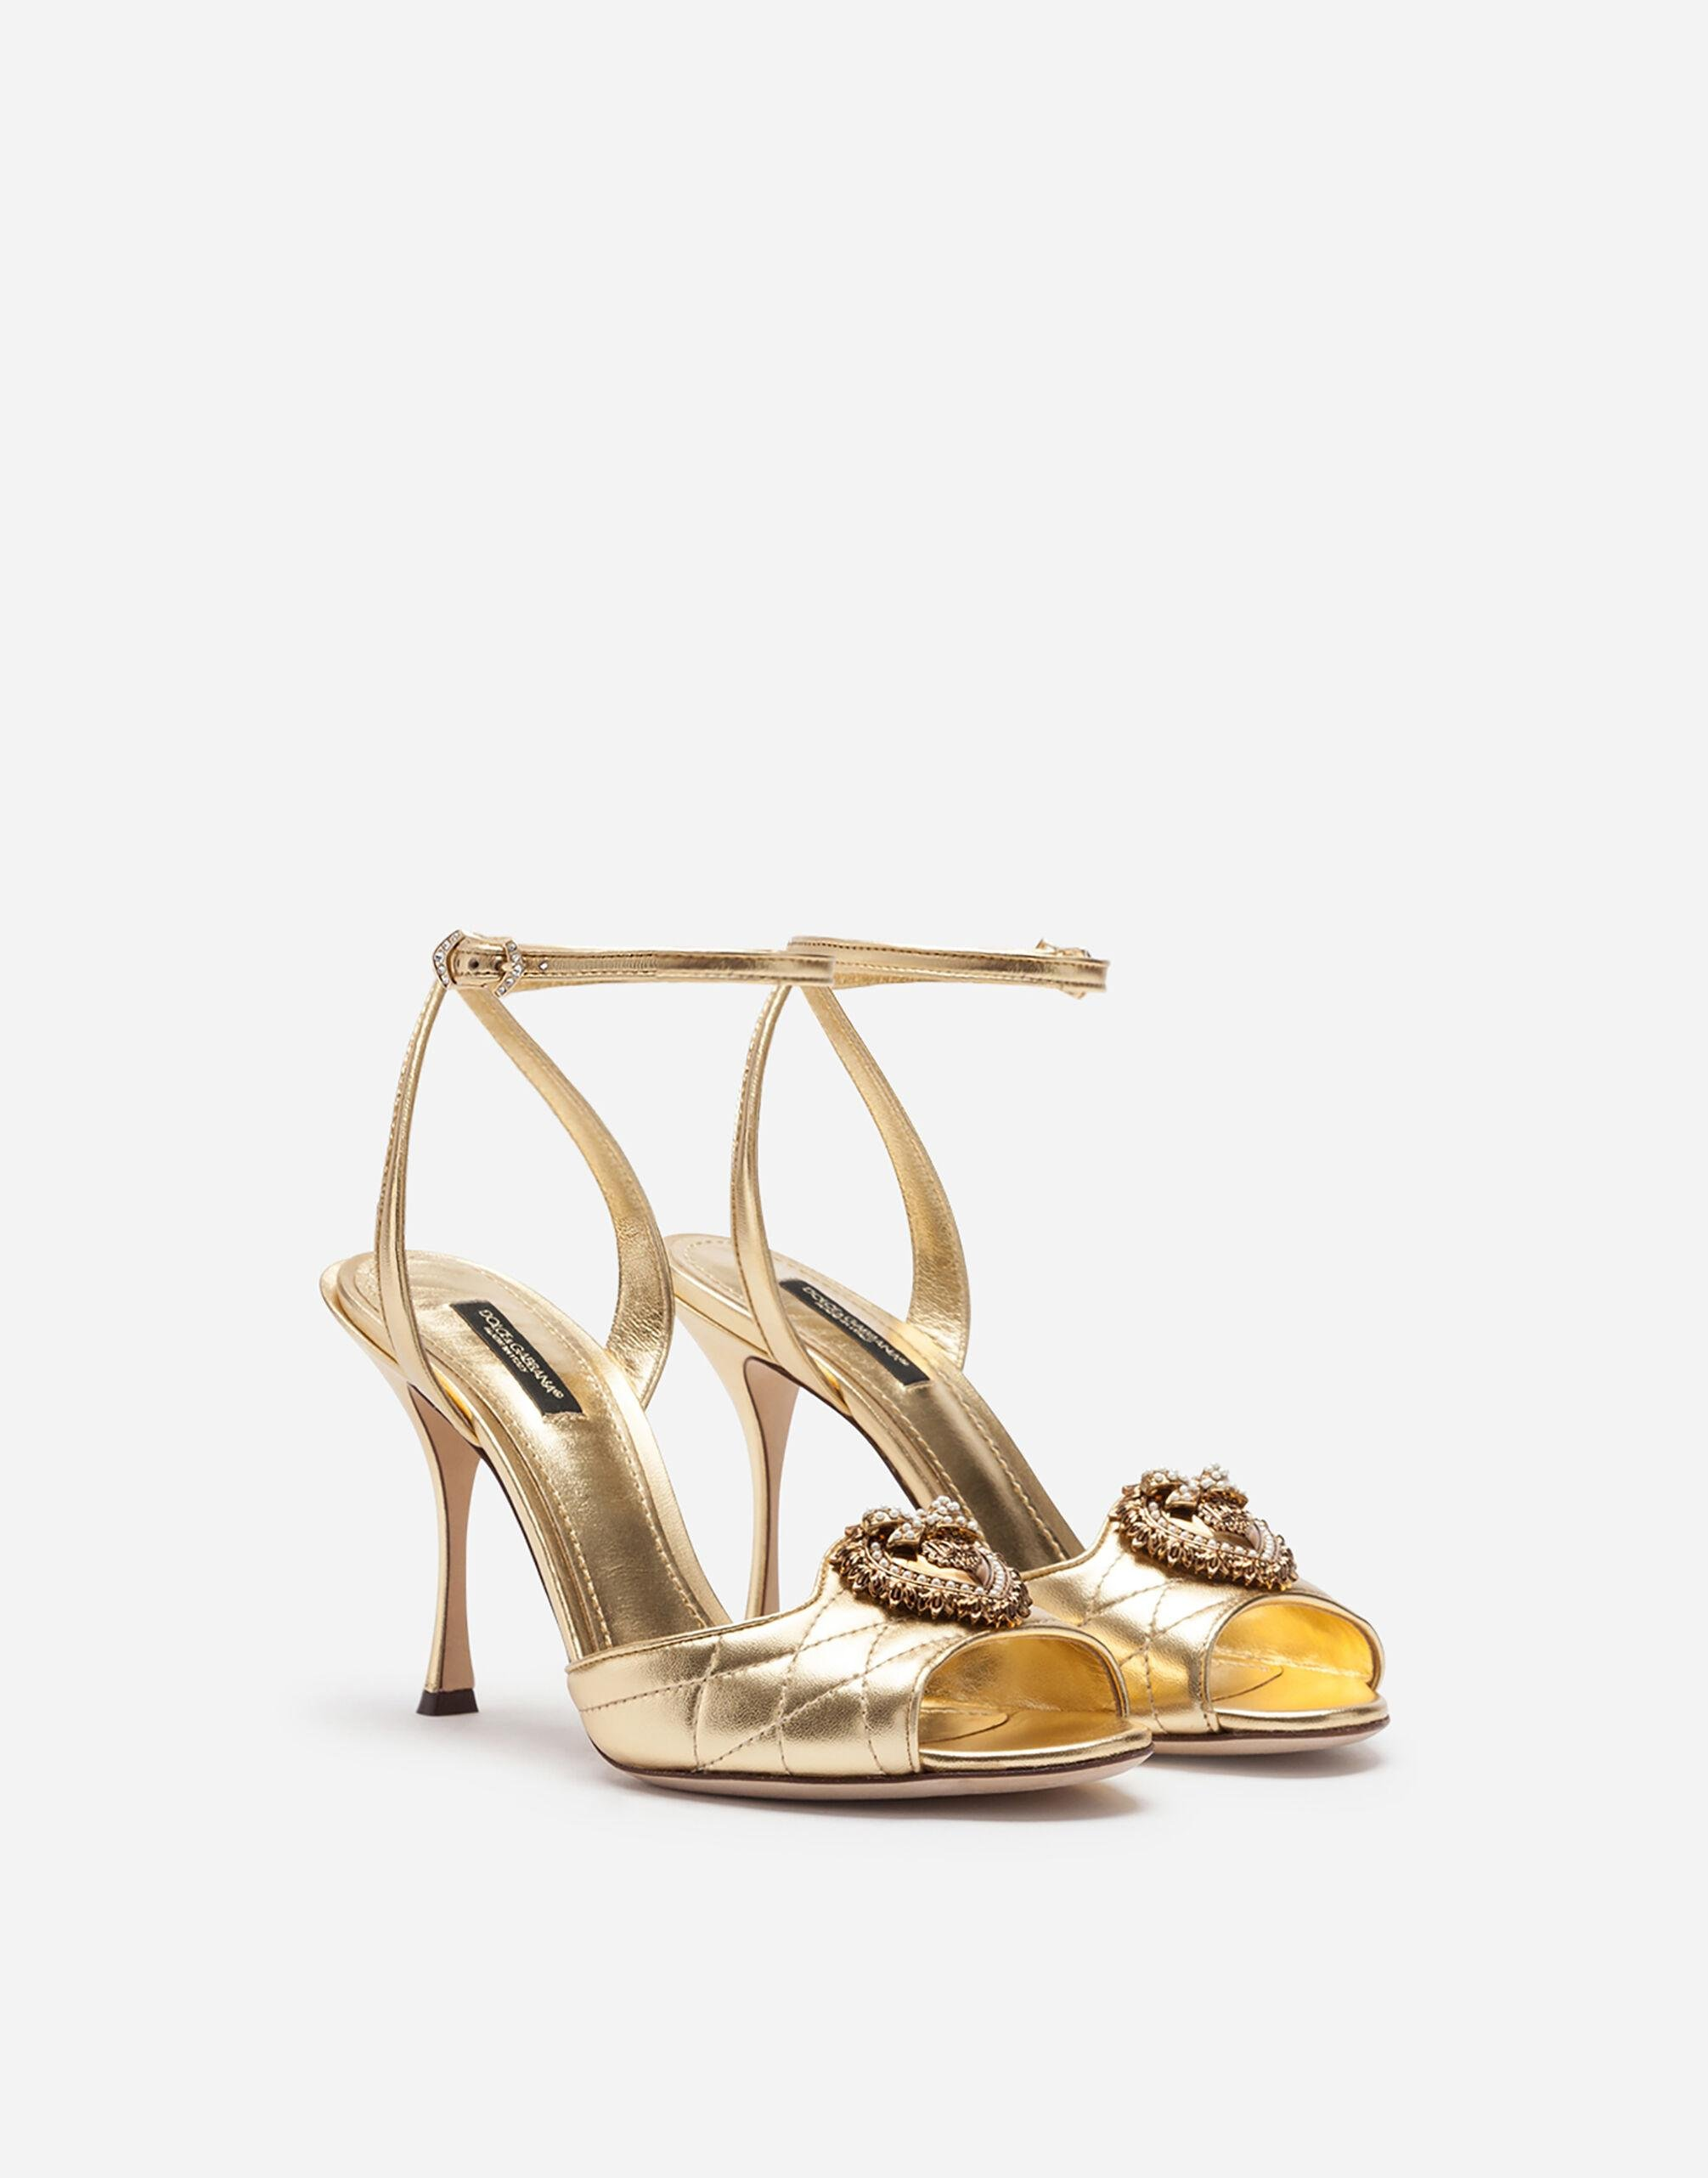 Quilted nappa mordore Devotion sandals 1